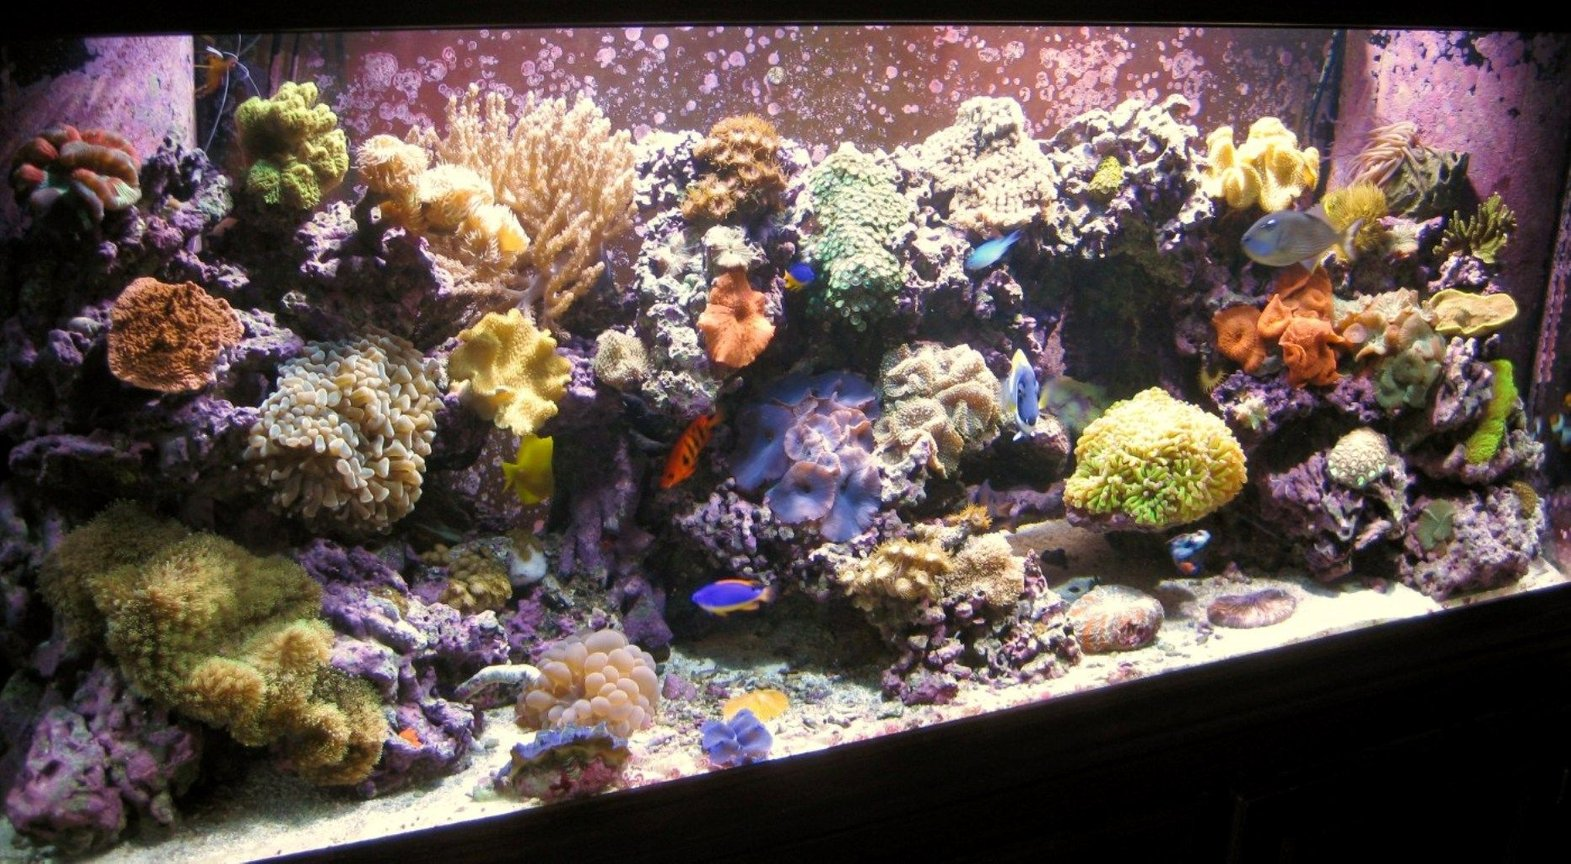 120 gallons reef tank (mostly live coral and fish) - latest pic as of Mar 3rd